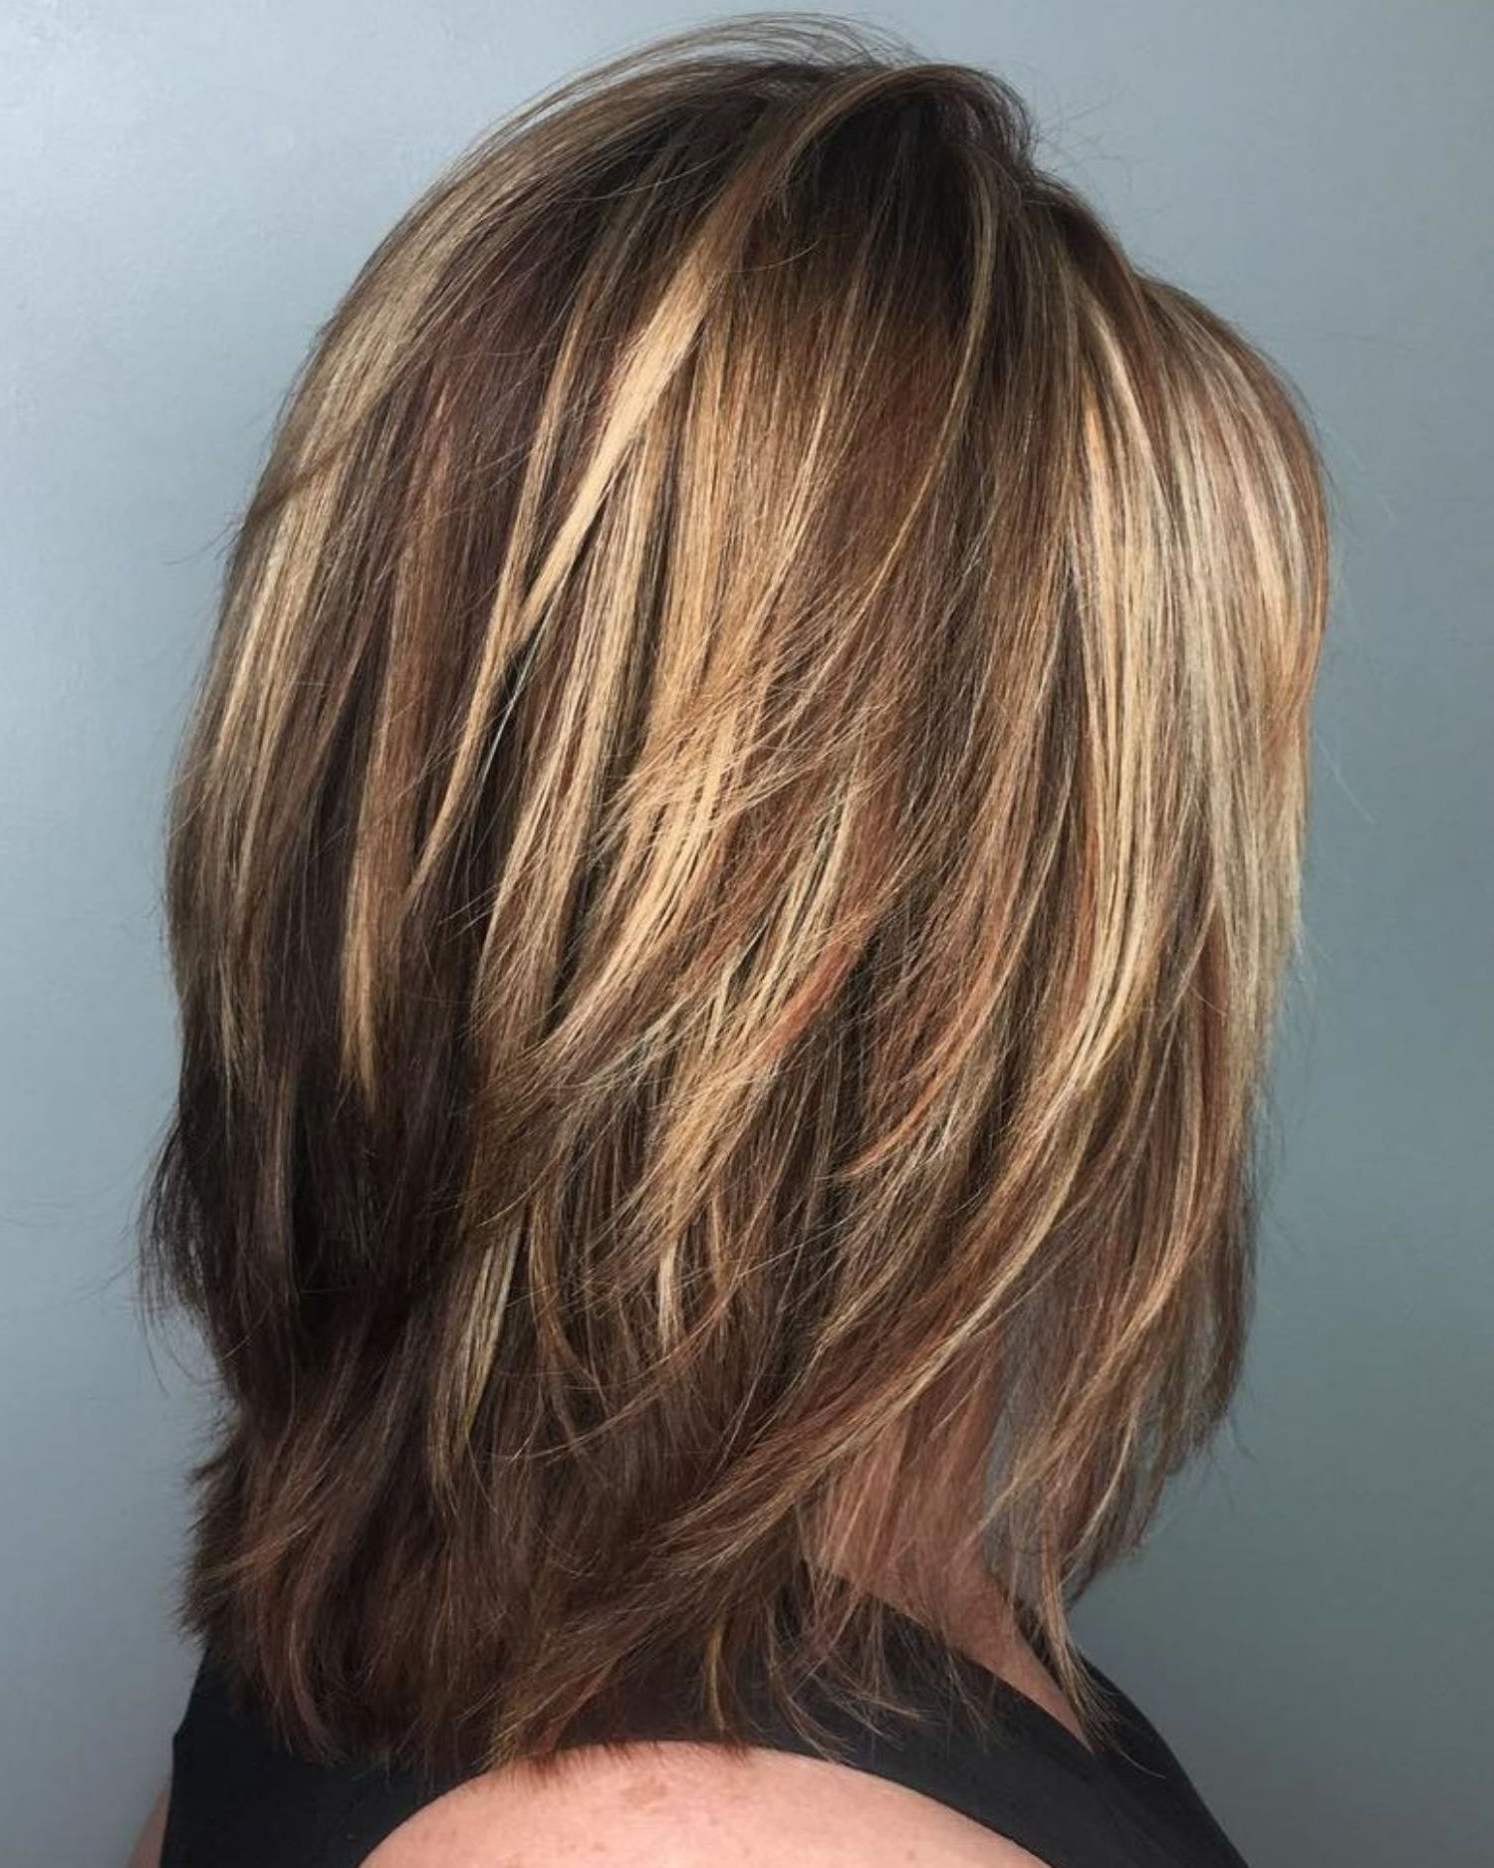 70 Brightest Medium Layered Haircuts To Light You Up (Gallery 17 of 20)